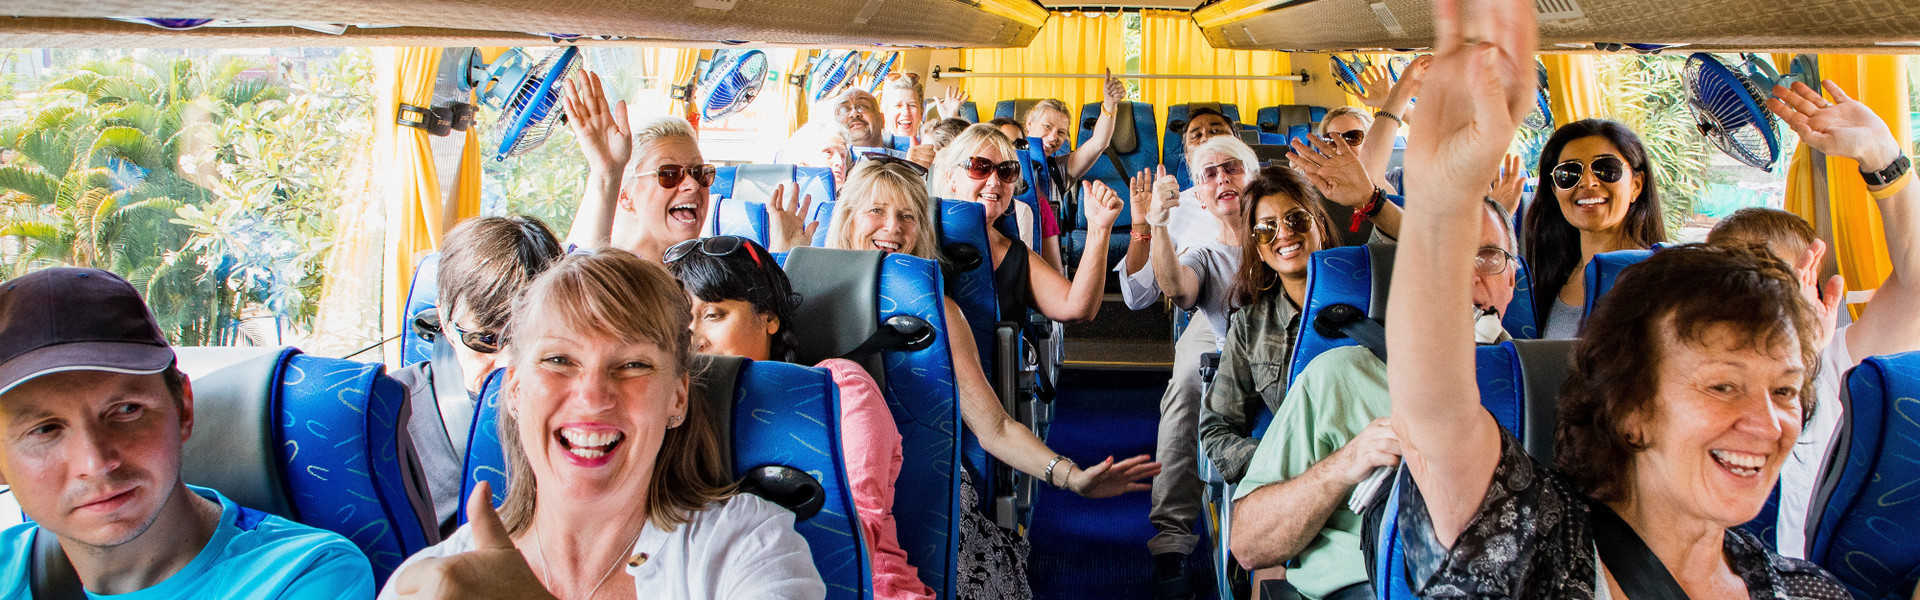 Team Building Activities In Orlando - Group on a bus ride